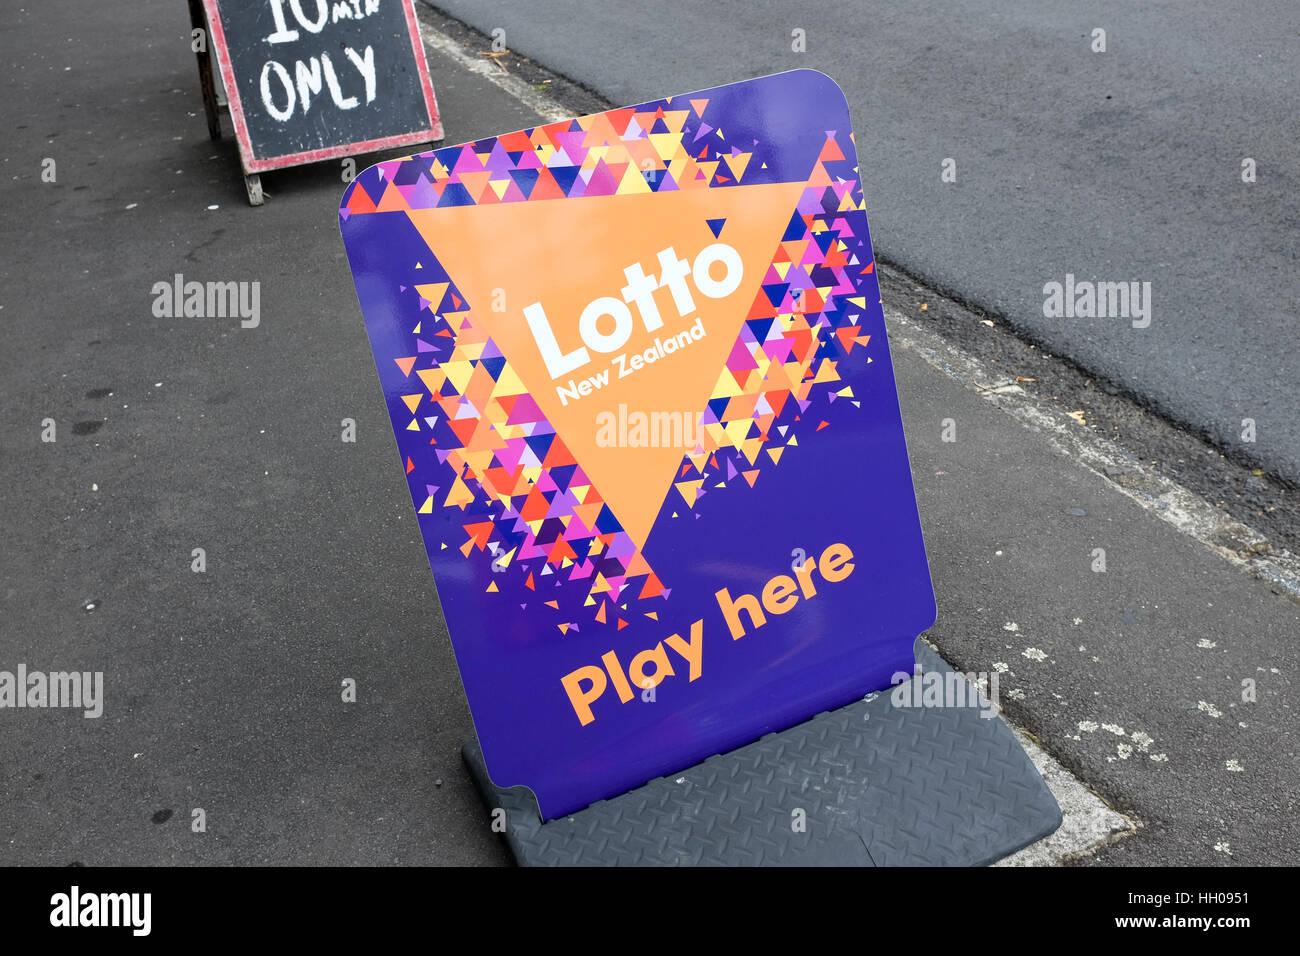 An ad for New Zealand's lottery. - Stock Image